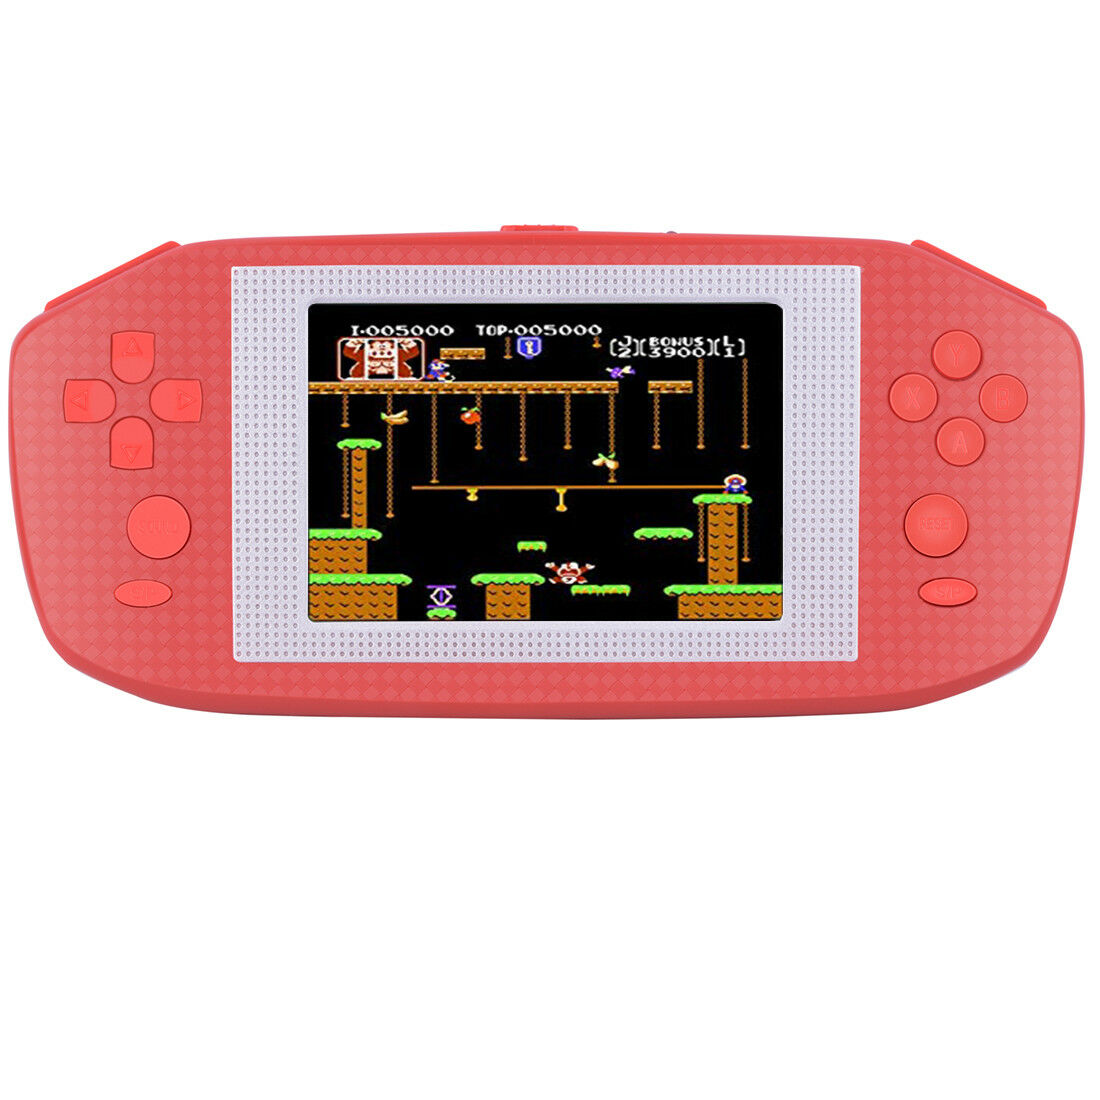 Retro Handheld Game Console Birthday Christmas Gift for Kids